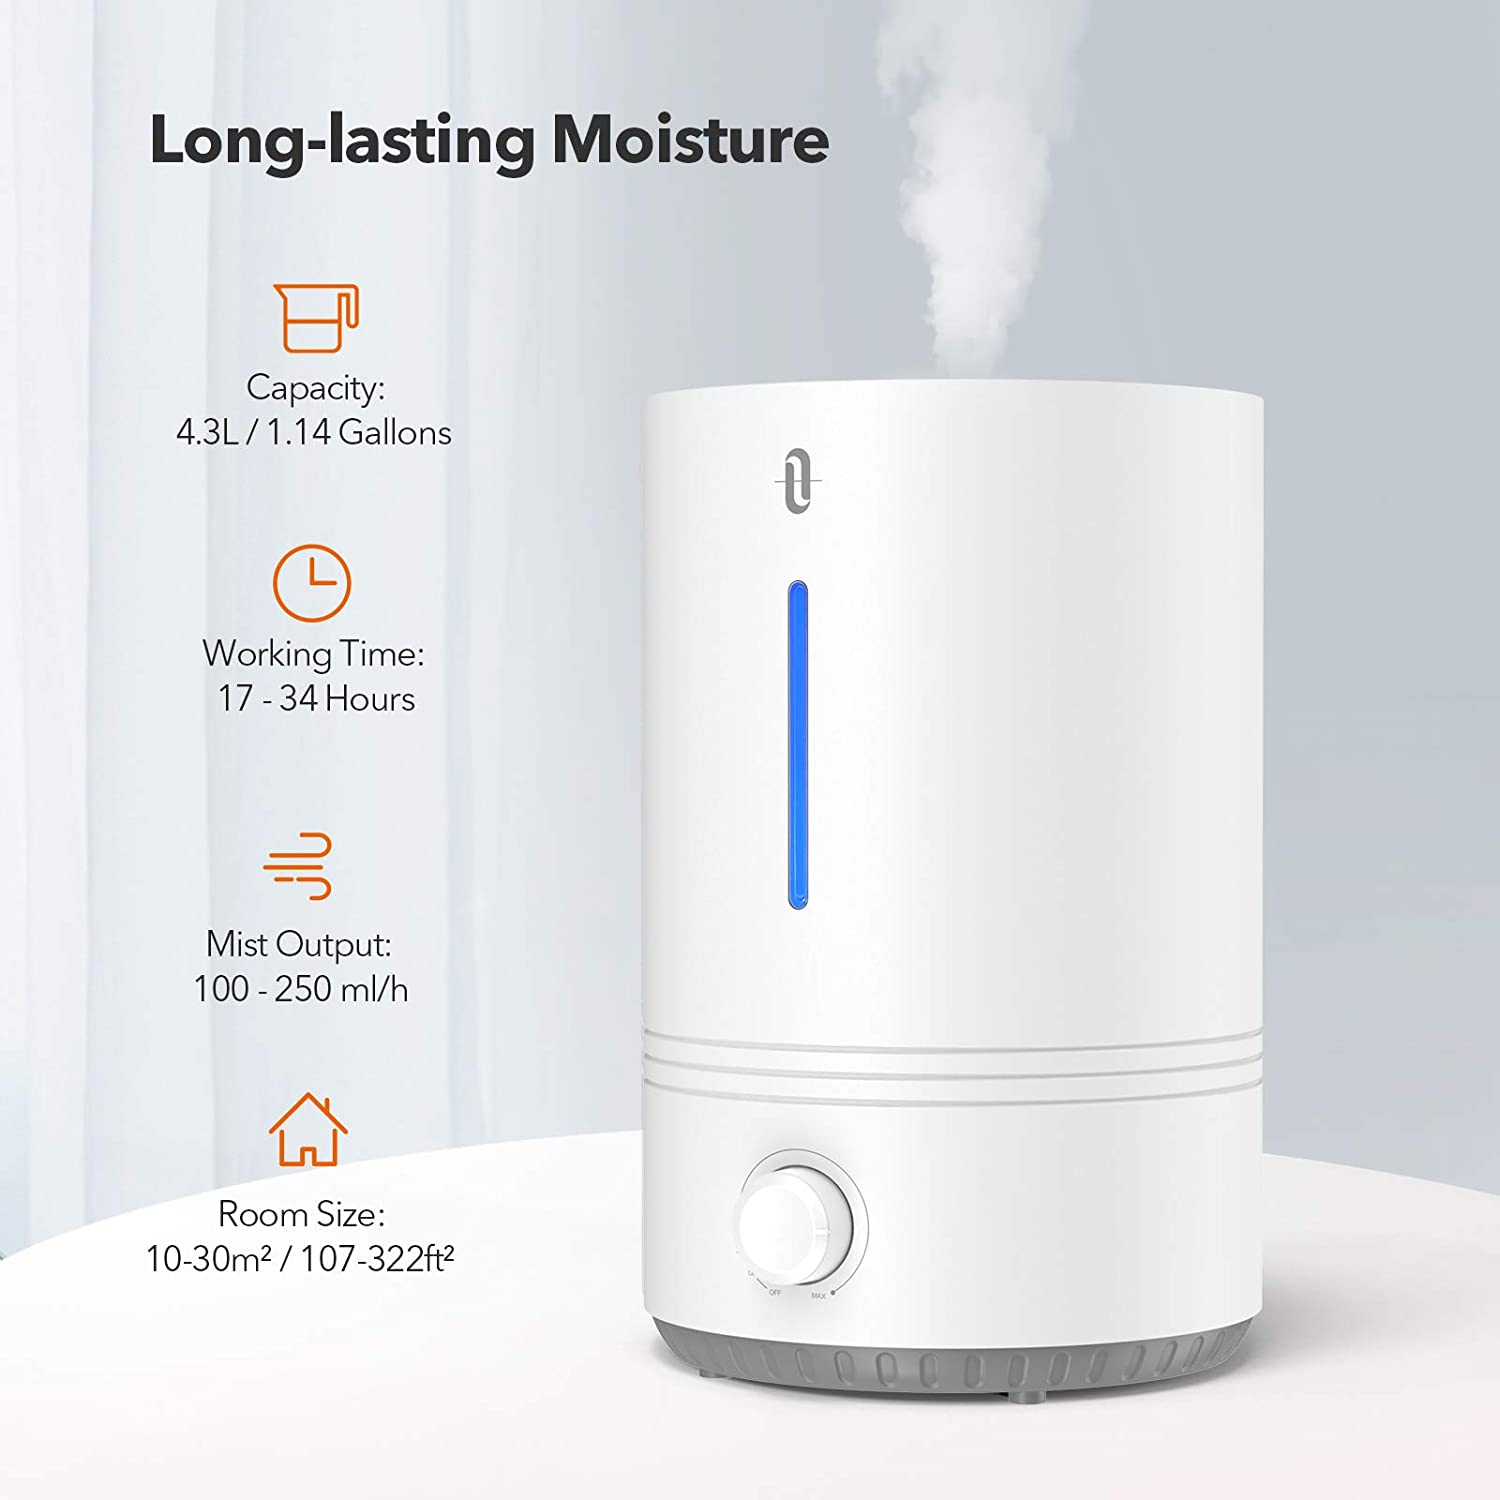 Blue Mood Light BPA Free Easy to Clean 17-36 Hours 4.3L Cool Mist Humidifier for for Bedroom Nursery TaoTronics TT-AH027-NEW Top Fill Auto Shut Off White